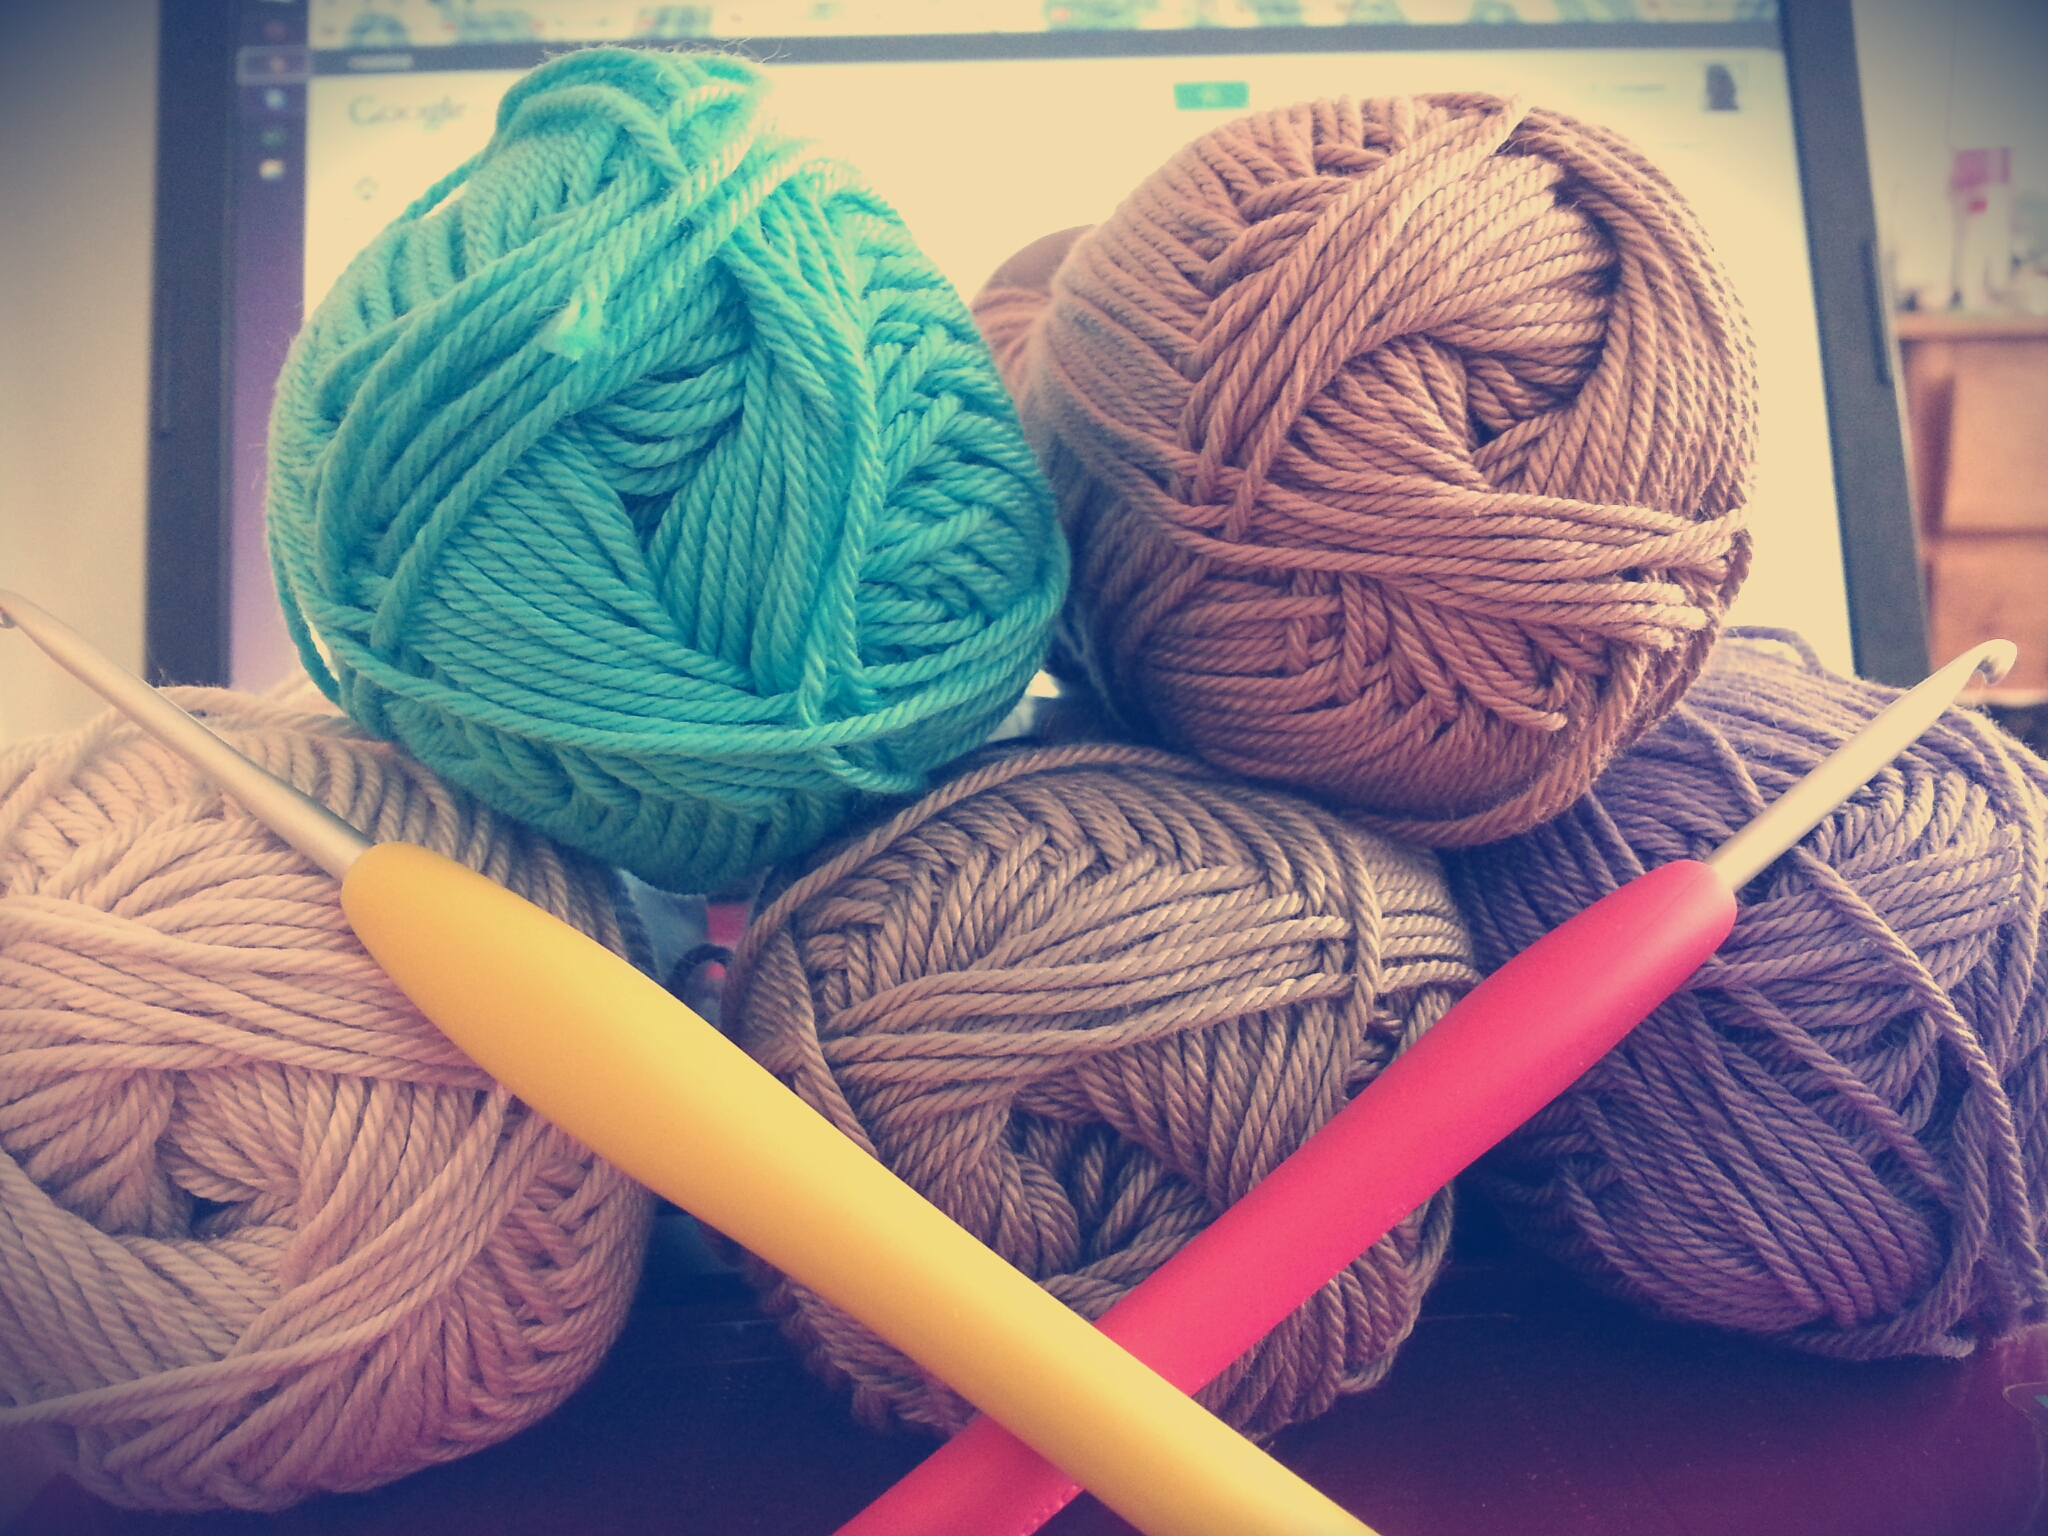 Crocheting Supplies : New Crochet Supplies - My Happily Ever Crafted